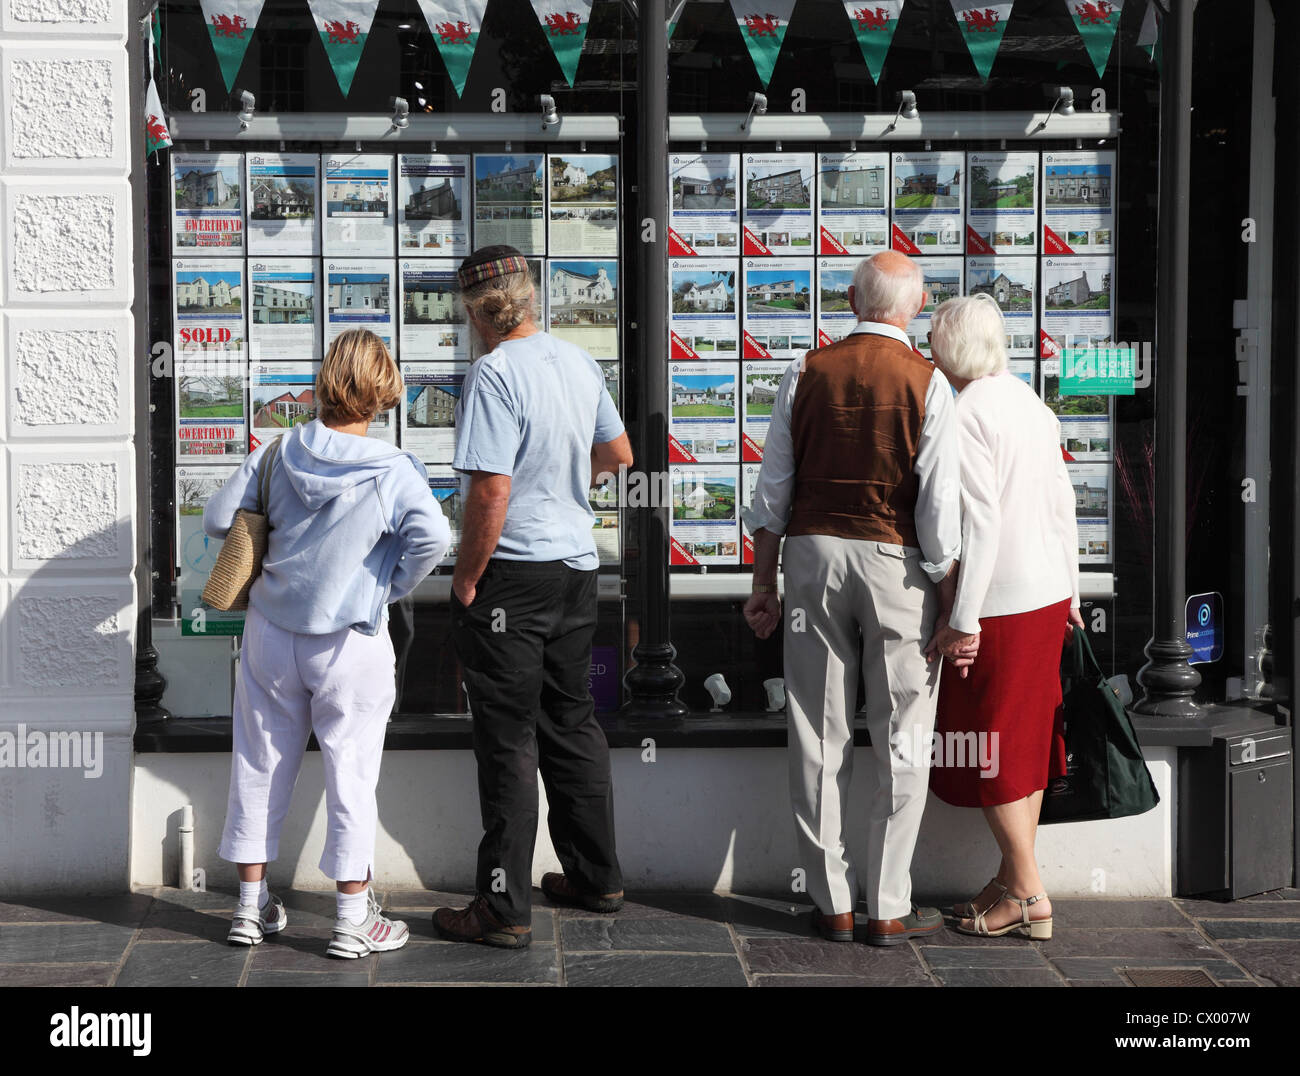 two-couples-one-holding-hands-outside-estate-agents-office-in-caernarfon-CX007W.jpg